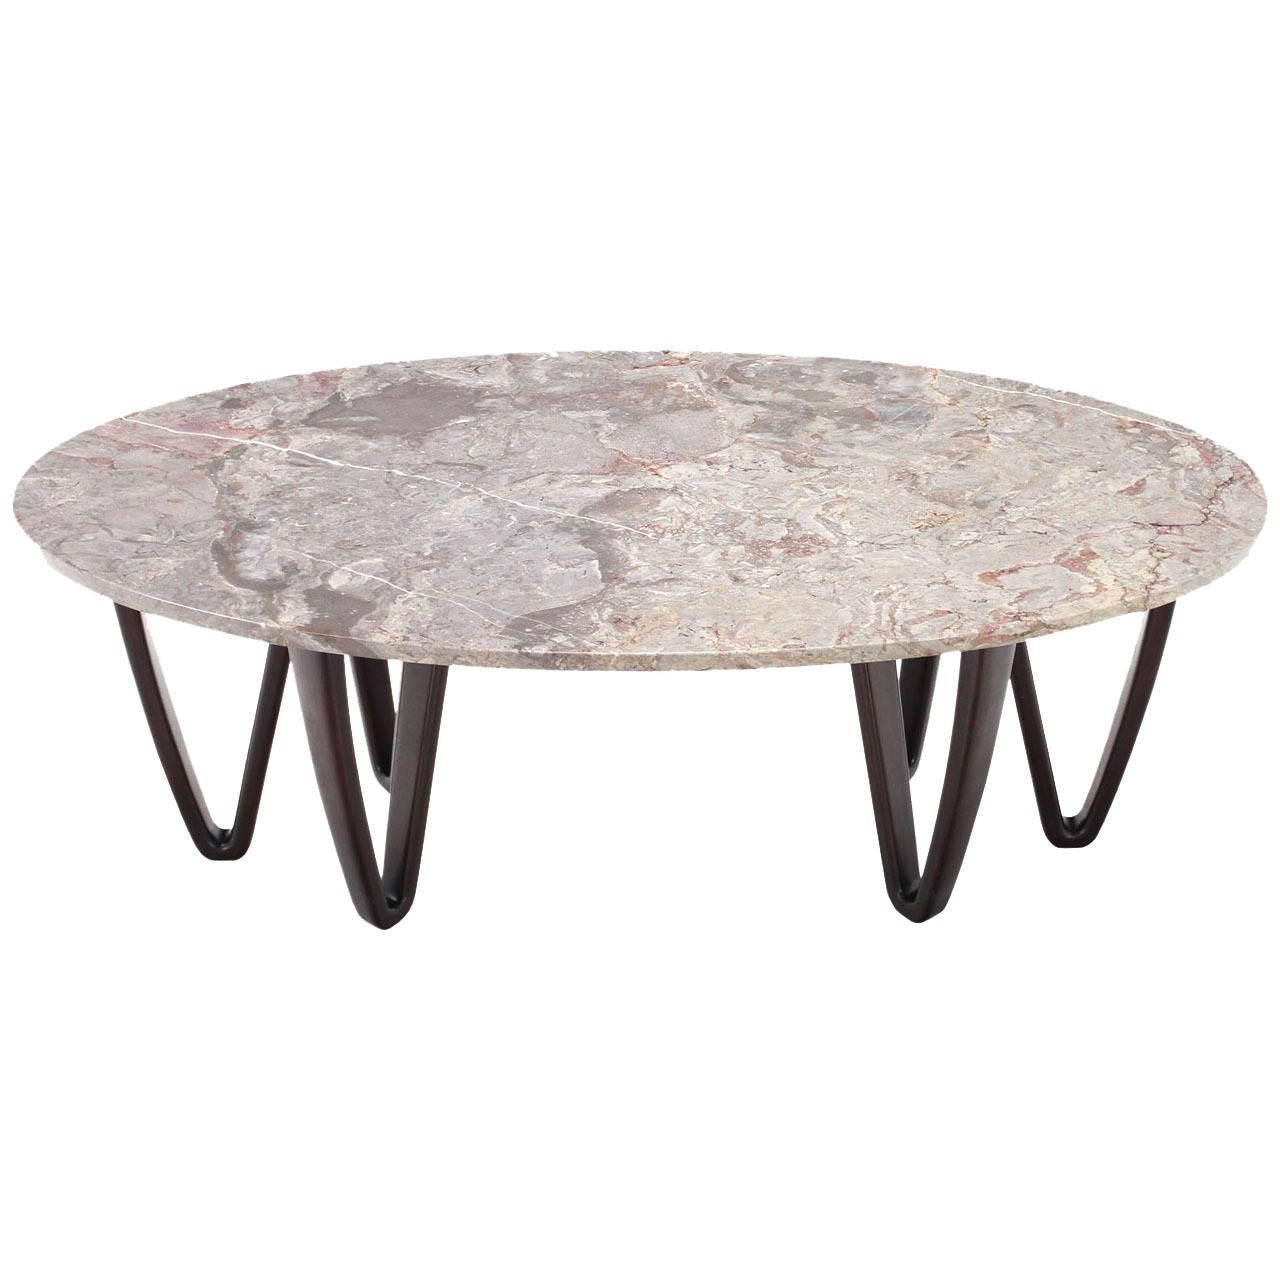 Home Decor: Amusing Marble Top Coffee Table And Oval Table On Wooden Pertaining To Famous Smart Large Round Marble Top Coffee Tables (View 8 of 20)